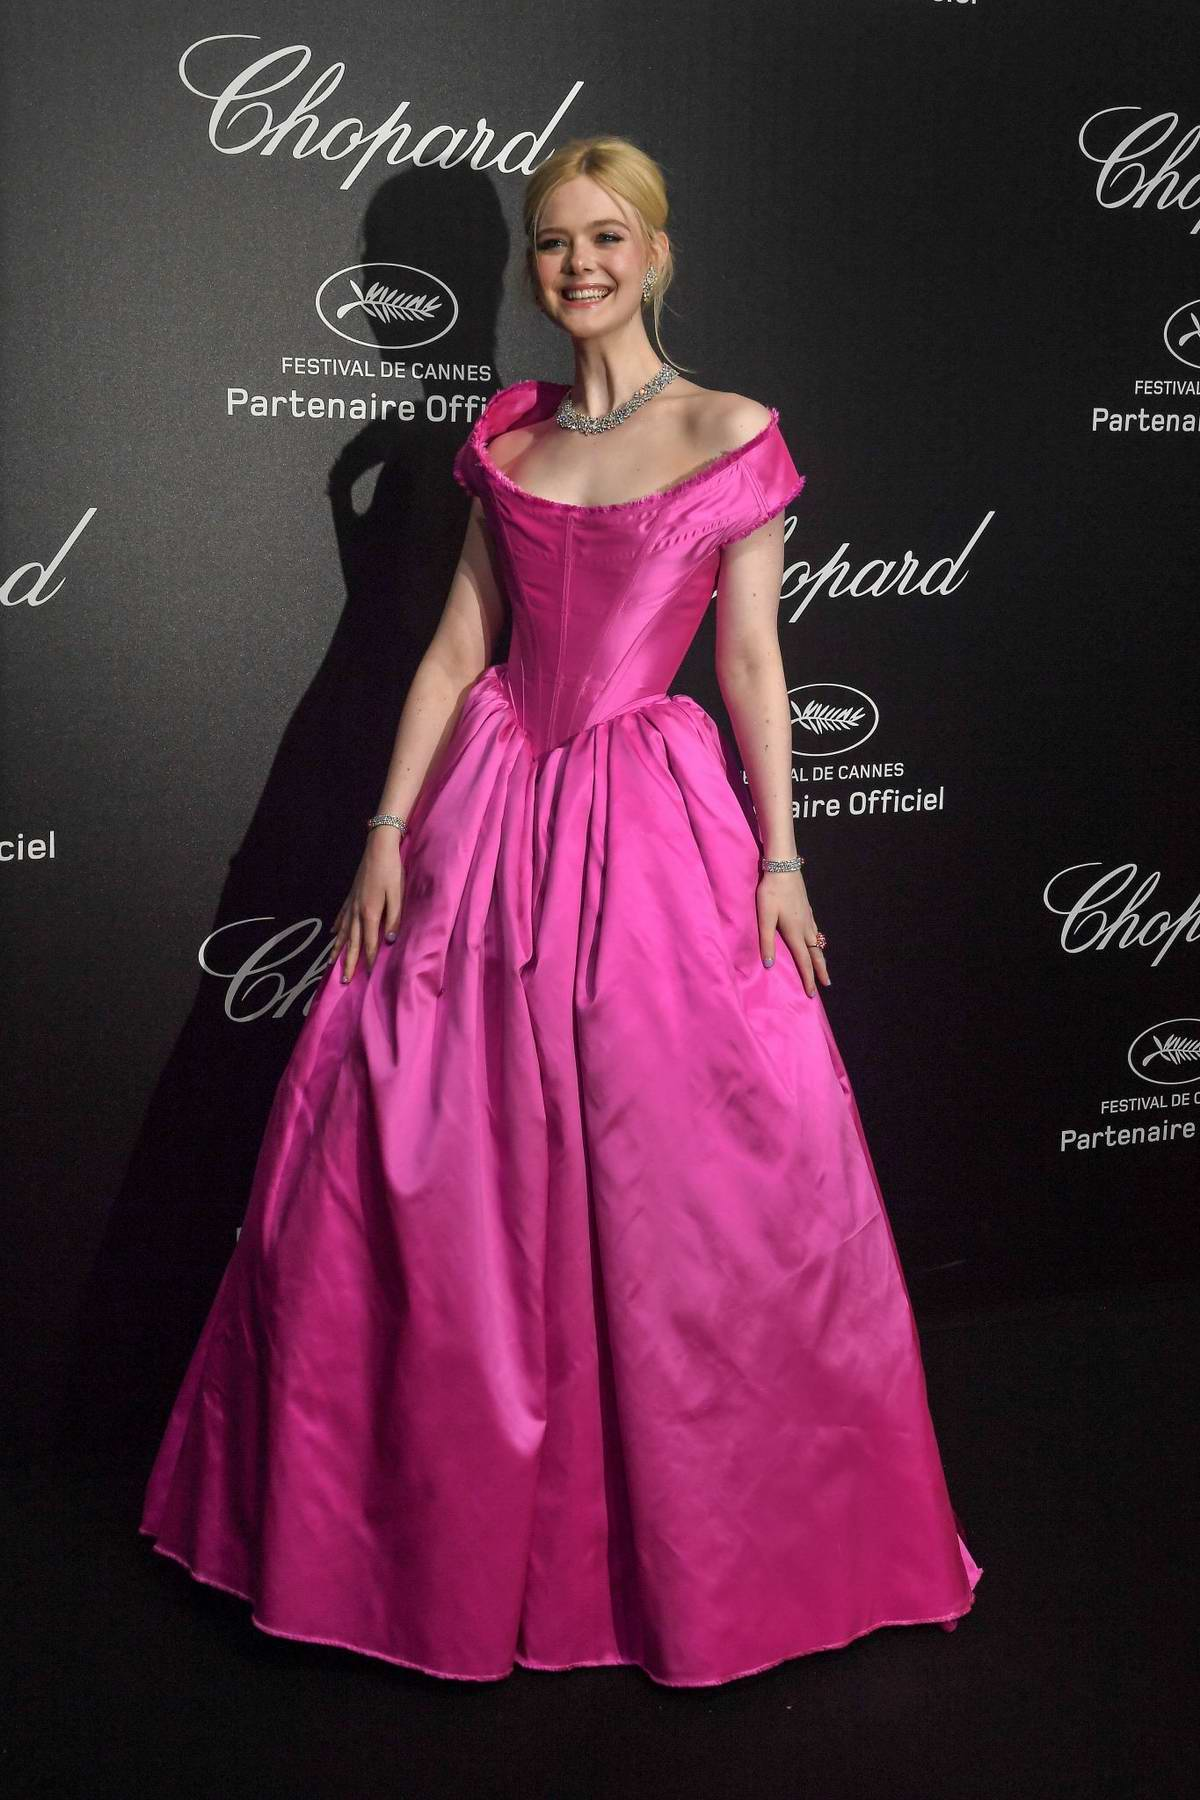 Elle Fanning attends the Chopard Love Night Party during the 72nd annual Cannes Film Festival in Cannes, France